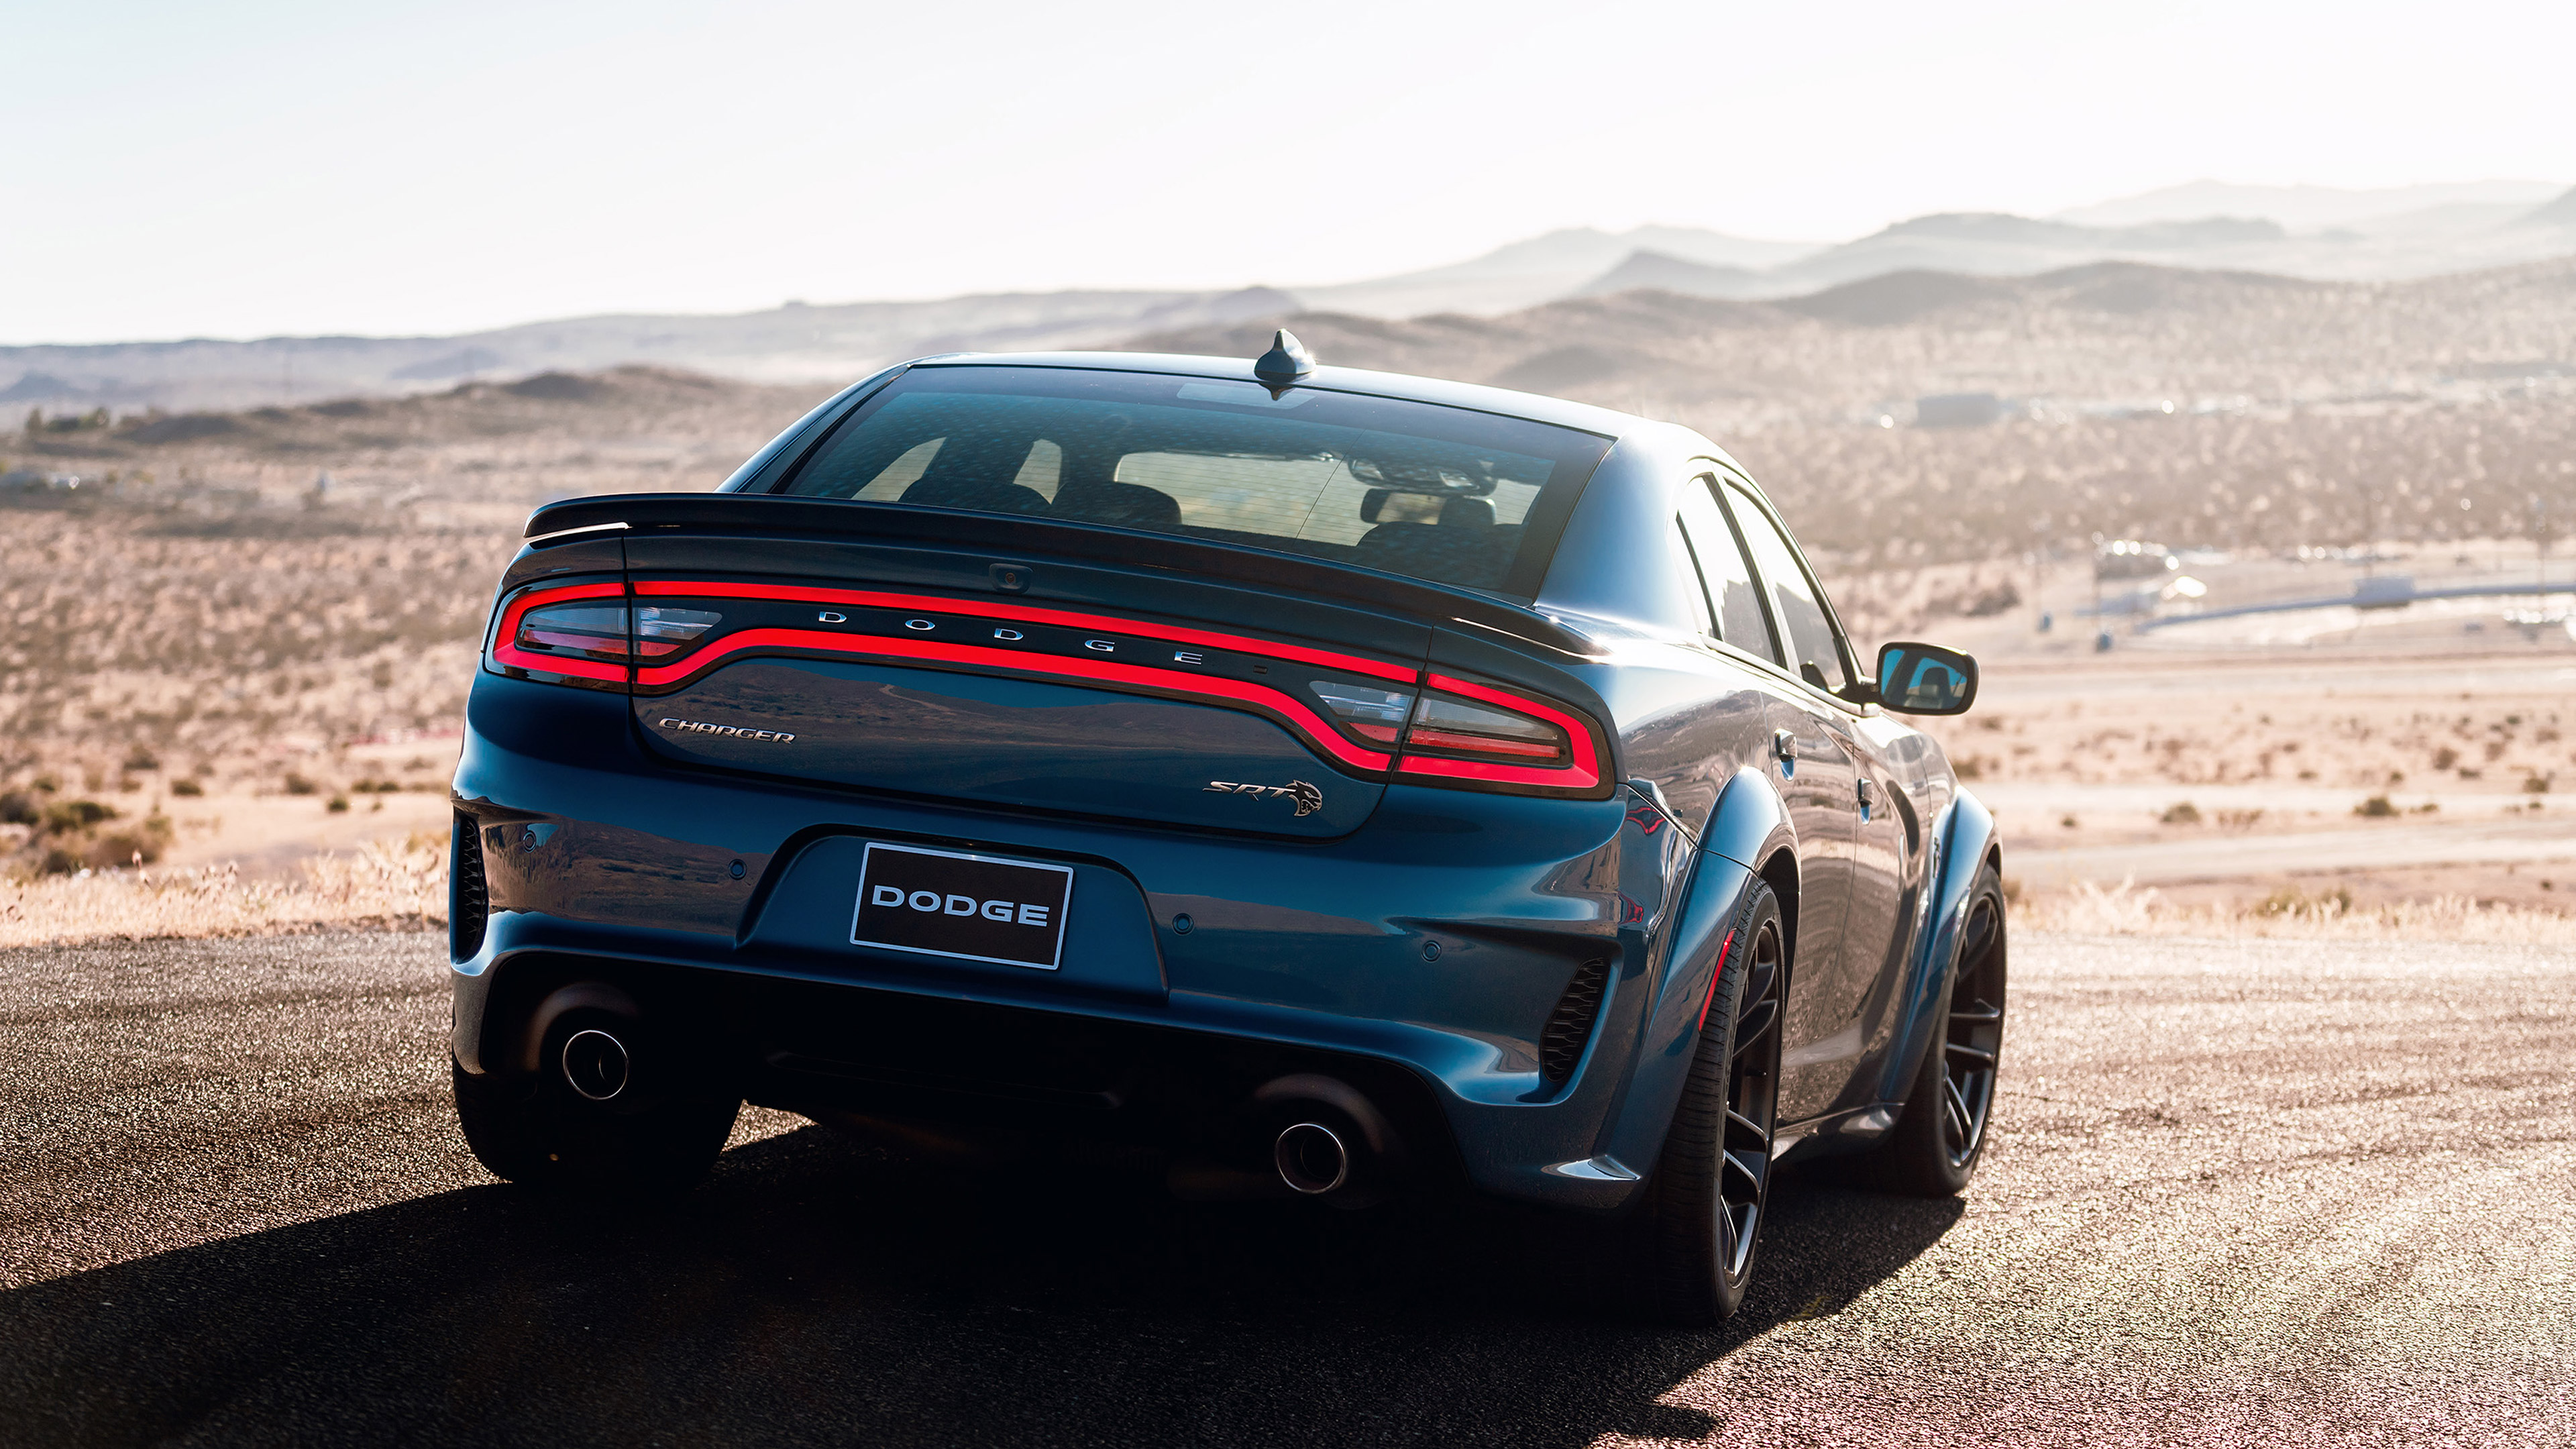 2020 Dodge Charger Srt Hellcat Widebody 4k Ultra Hd Wallpaper Background Image 3840x2160 Id 1036035 Wallpaper Abyss